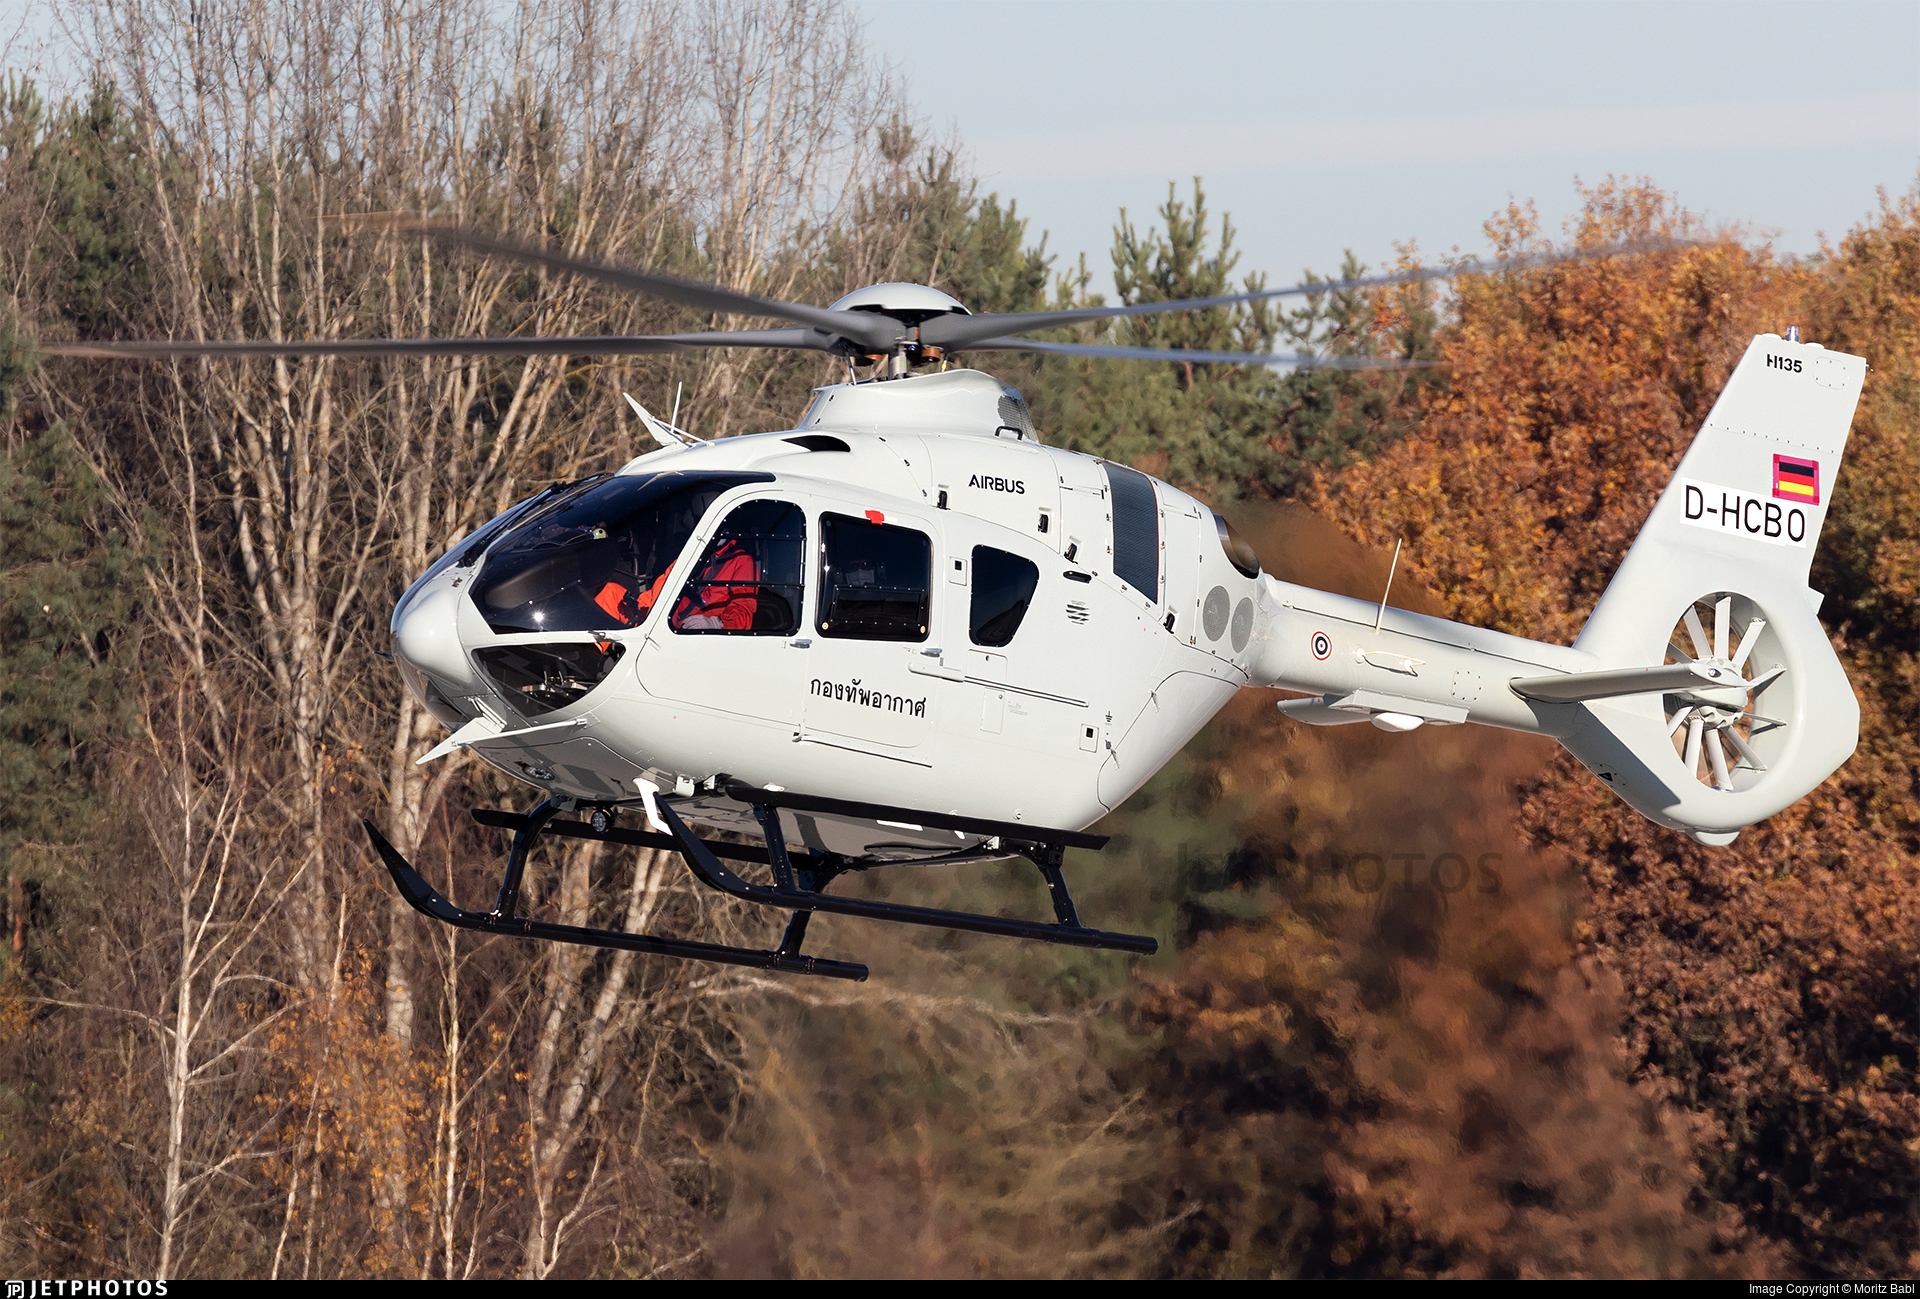 D-HCBO - Airbus Helicopters H135 P3H - Airbus Helicopters